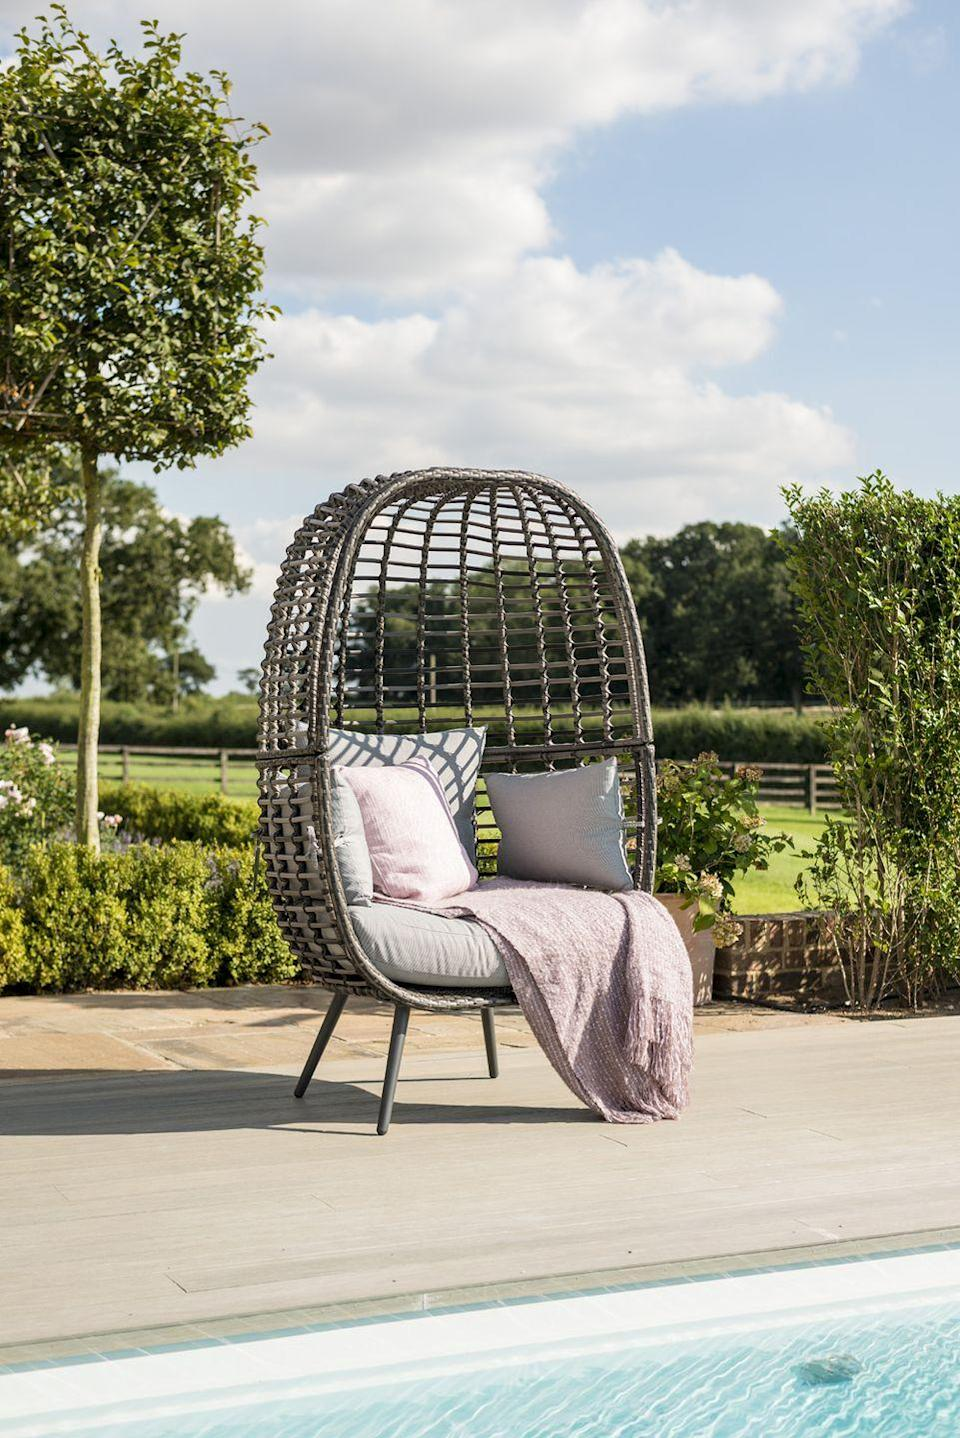 """<p>Cocooning pod-style <a href=""""https://www.housebeautiful.com/uk/garden/g35548498/hanging-egg-chair/"""" rel=""""nofollow noopener"""" target=""""_blank"""" data-ylk=""""slk:egg chairs"""" class=""""link rapid-noclick-resp"""">egg chairs</a> are the ultimate place to relax. A favourite for many on Instagram (including Mrs Hinch and <a href=""""https://www.housebeautiful.com/uk/lifestyle/a35780497/stacey-solomon-sort-your-life-out-bbc-one-show/"""" rel=""""nofollow noopener"""" target=""""_blank"""" data-ylk=""""slk:Stacey Solomon"""" class=""""link rapid-noclick-resp"""">Stacey Solomon</a>), they are ideal for drifting off in the sunshine. Pricey, yes, but they are a cosy addition to every outdoor sanctuary. Have you got yours yet? </p><p>Pictured: <a href=""""https://go.redirectingat.com?id=127X1599956&url=https%3A%2F%2Fwww.cuckooland.com%2Fbrand%2Fmaze-rattan%2Fmaze-rattan-riviera-garden-chair&sref=https%3A%2F%2Fwww.housebeautiful.com%2Fuk%2Fgarden%2Fg36276312%2Finstagrammable-garden%2F"""" rel=""""nofollow noopener"""" target=""""_blank"""" data-ylk=""""slk:Maze Rattan Riviera Garden Chair, £599, Cuckooland"""" class=""""link rapid-noclick-resp"""">Maze Rattan Riviera Garden Chair, £599, Cuckooland</a></p><p><a class=""""link rapid-noclick-resp"""" href=""""https://www.housebeautiful.com/uk/garden/g35548498/hanging-egg-chair/"""" rel=""""nofollow noopener"""" target=""""_blank"""" data-ylk=""""slk:READ MORE: HANGING EGG CHAIRS"""">READ MORE: HANGING EGG CHAIRS</a> </p>"""